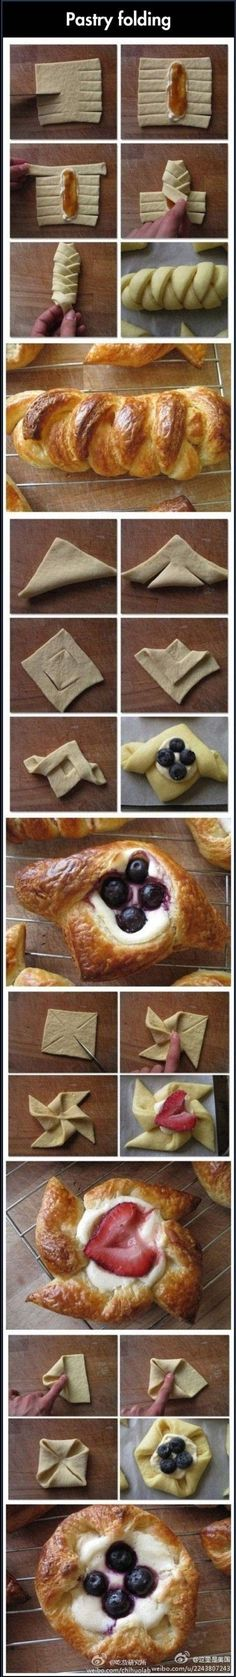 folded pastries